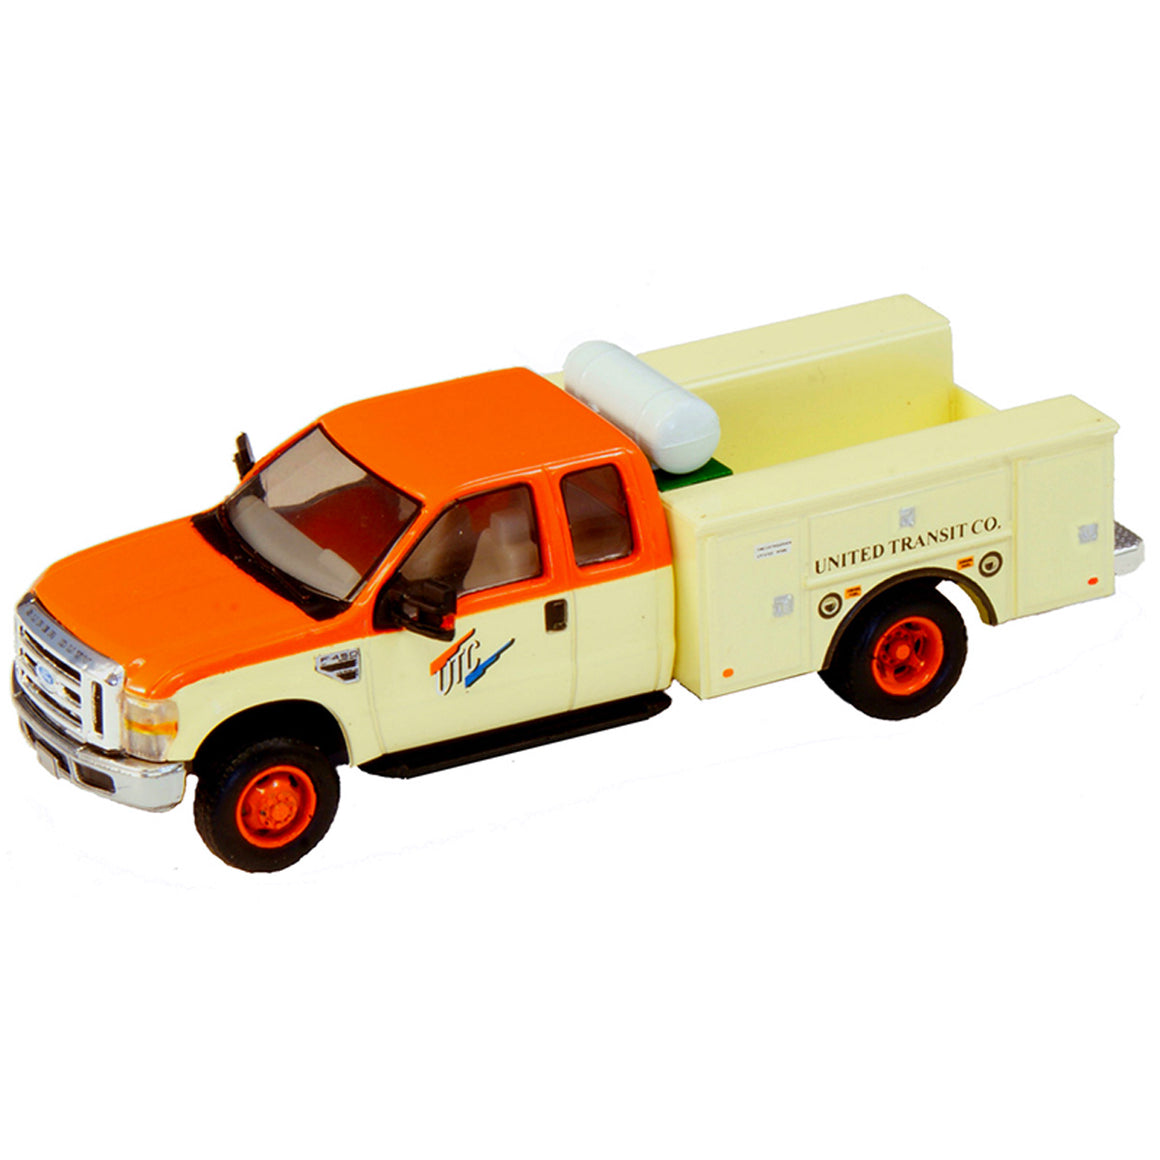 HO Scale: Lighted Ford F-450 Super Cab Fleet Service Truck - United Transit